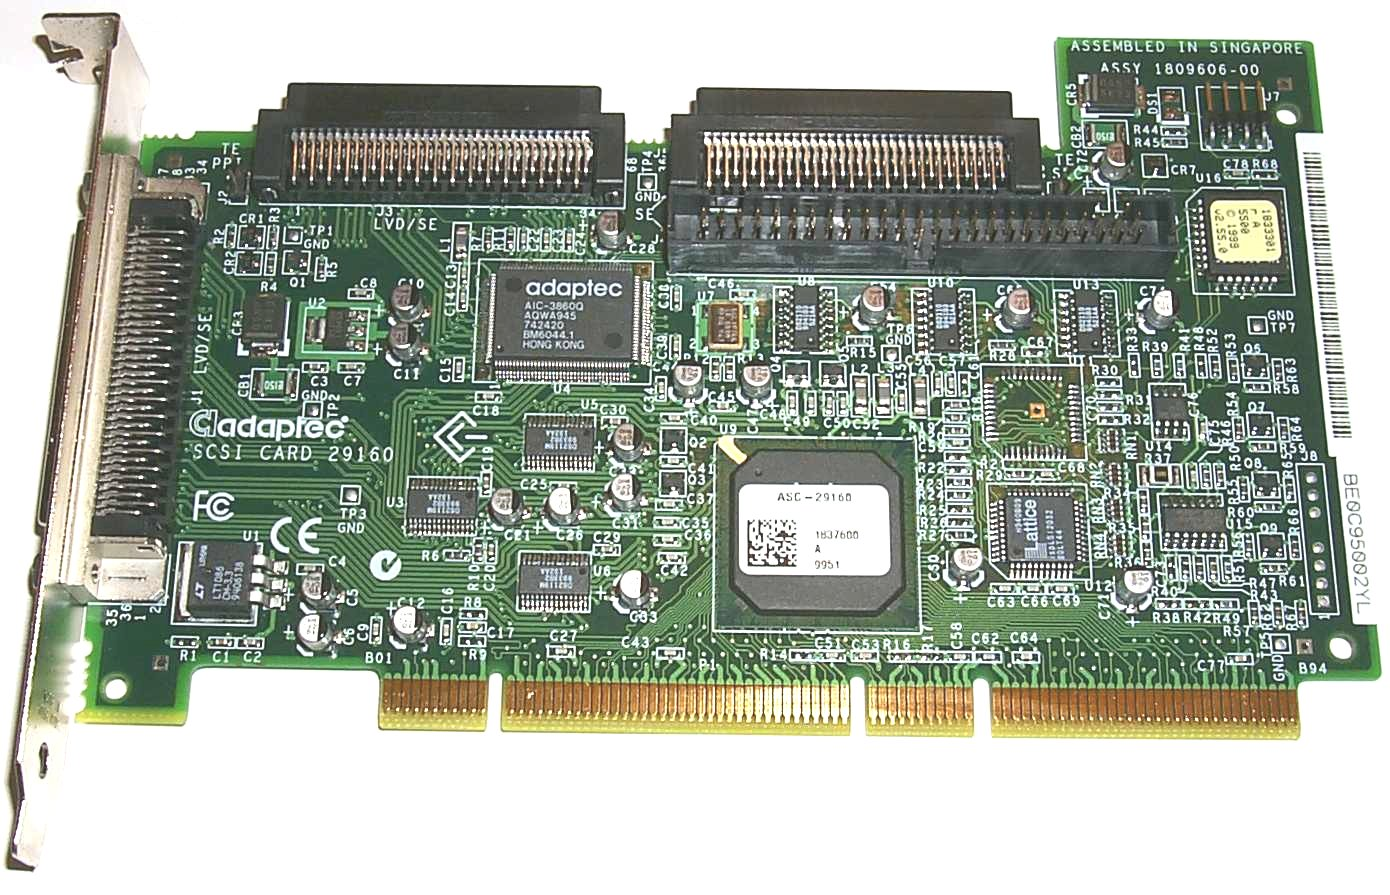 Download Driver: Adaptec 64-Bit/66MHz Wide Ultra3 SCSI Adapter